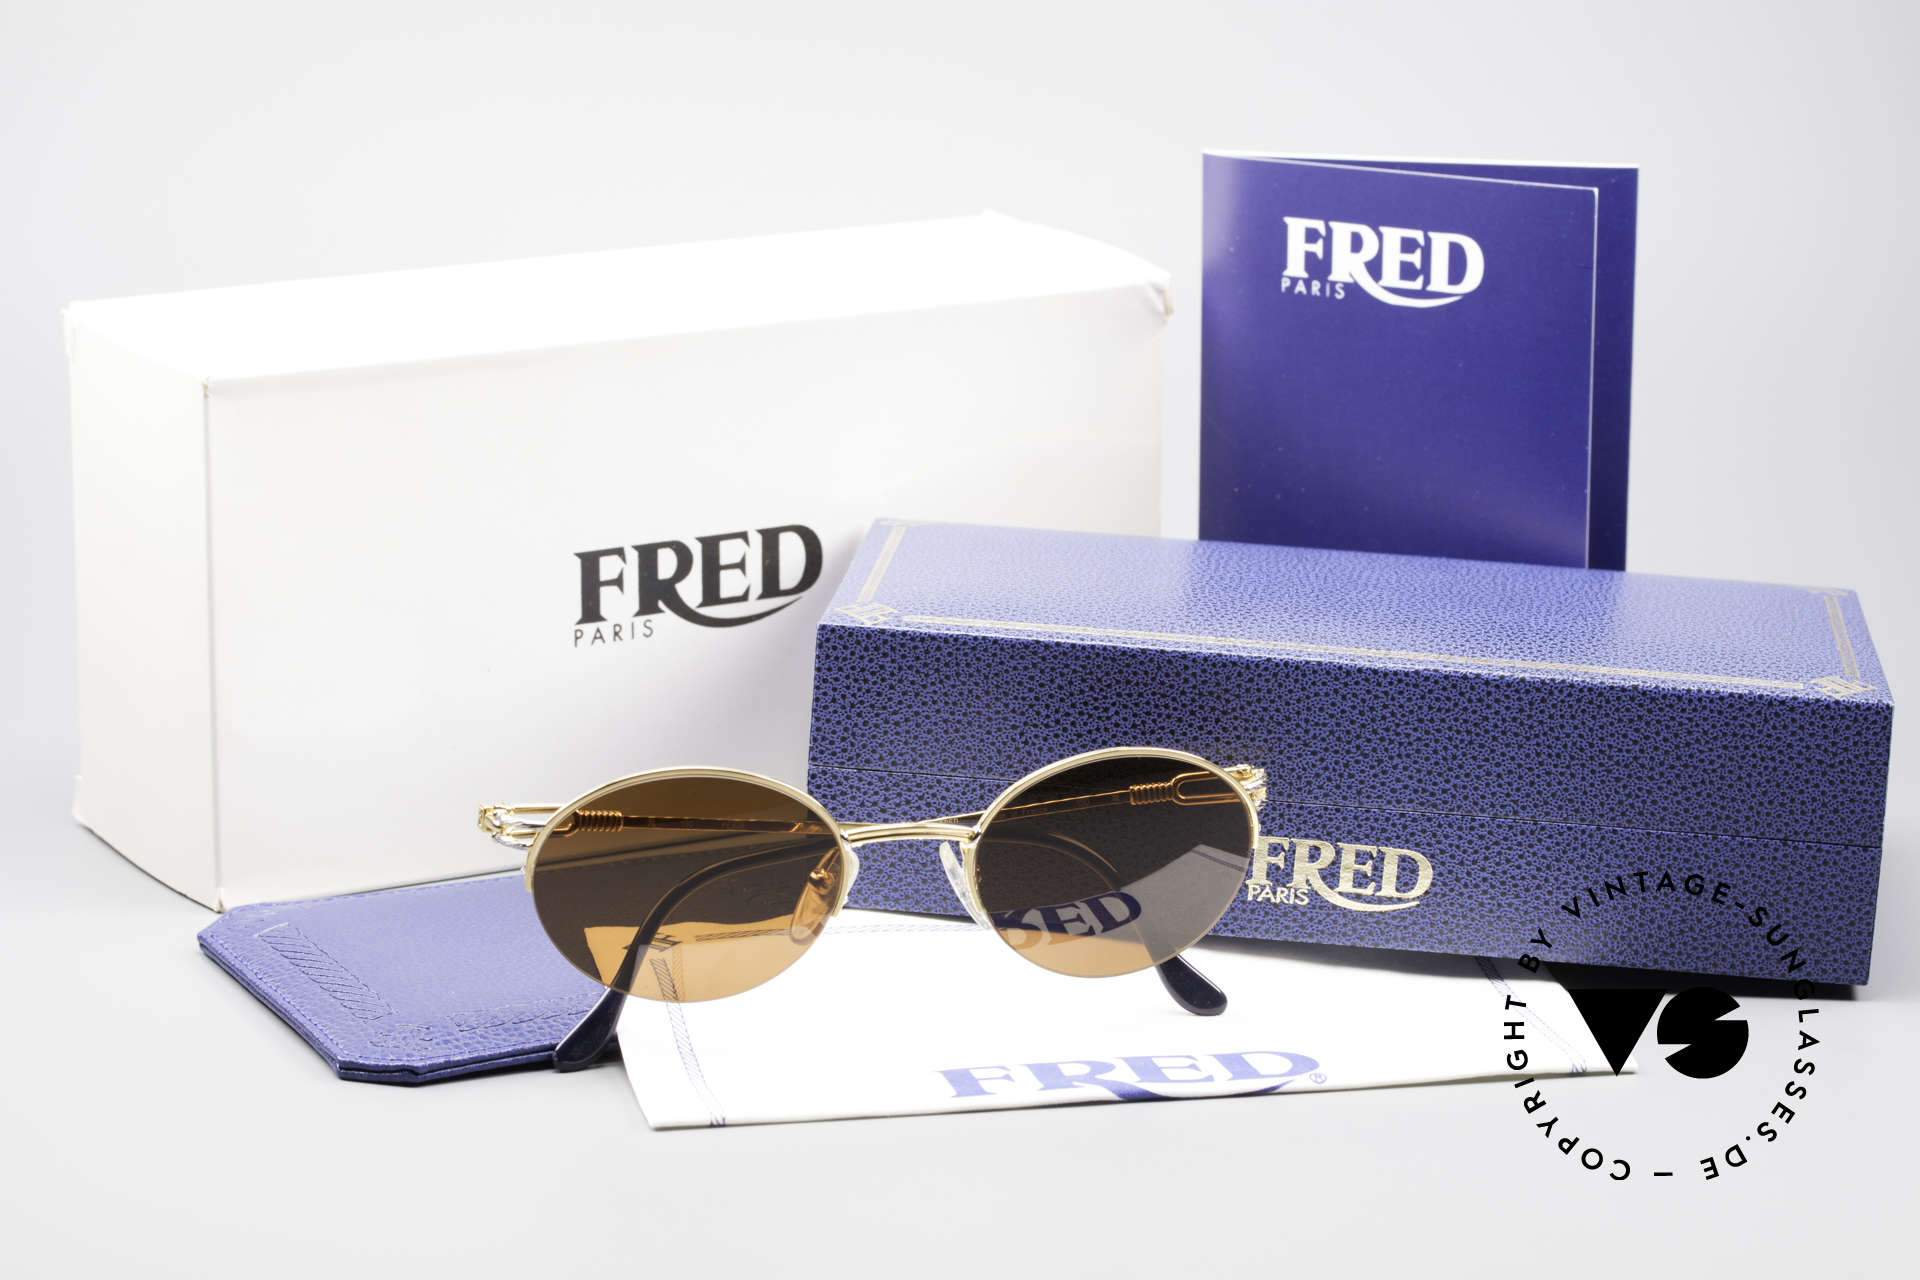 Fred Feroe Oval Luxury Sunglasses, unworn, like all our precious vintage Fred sunglasses, Made for Men and Women